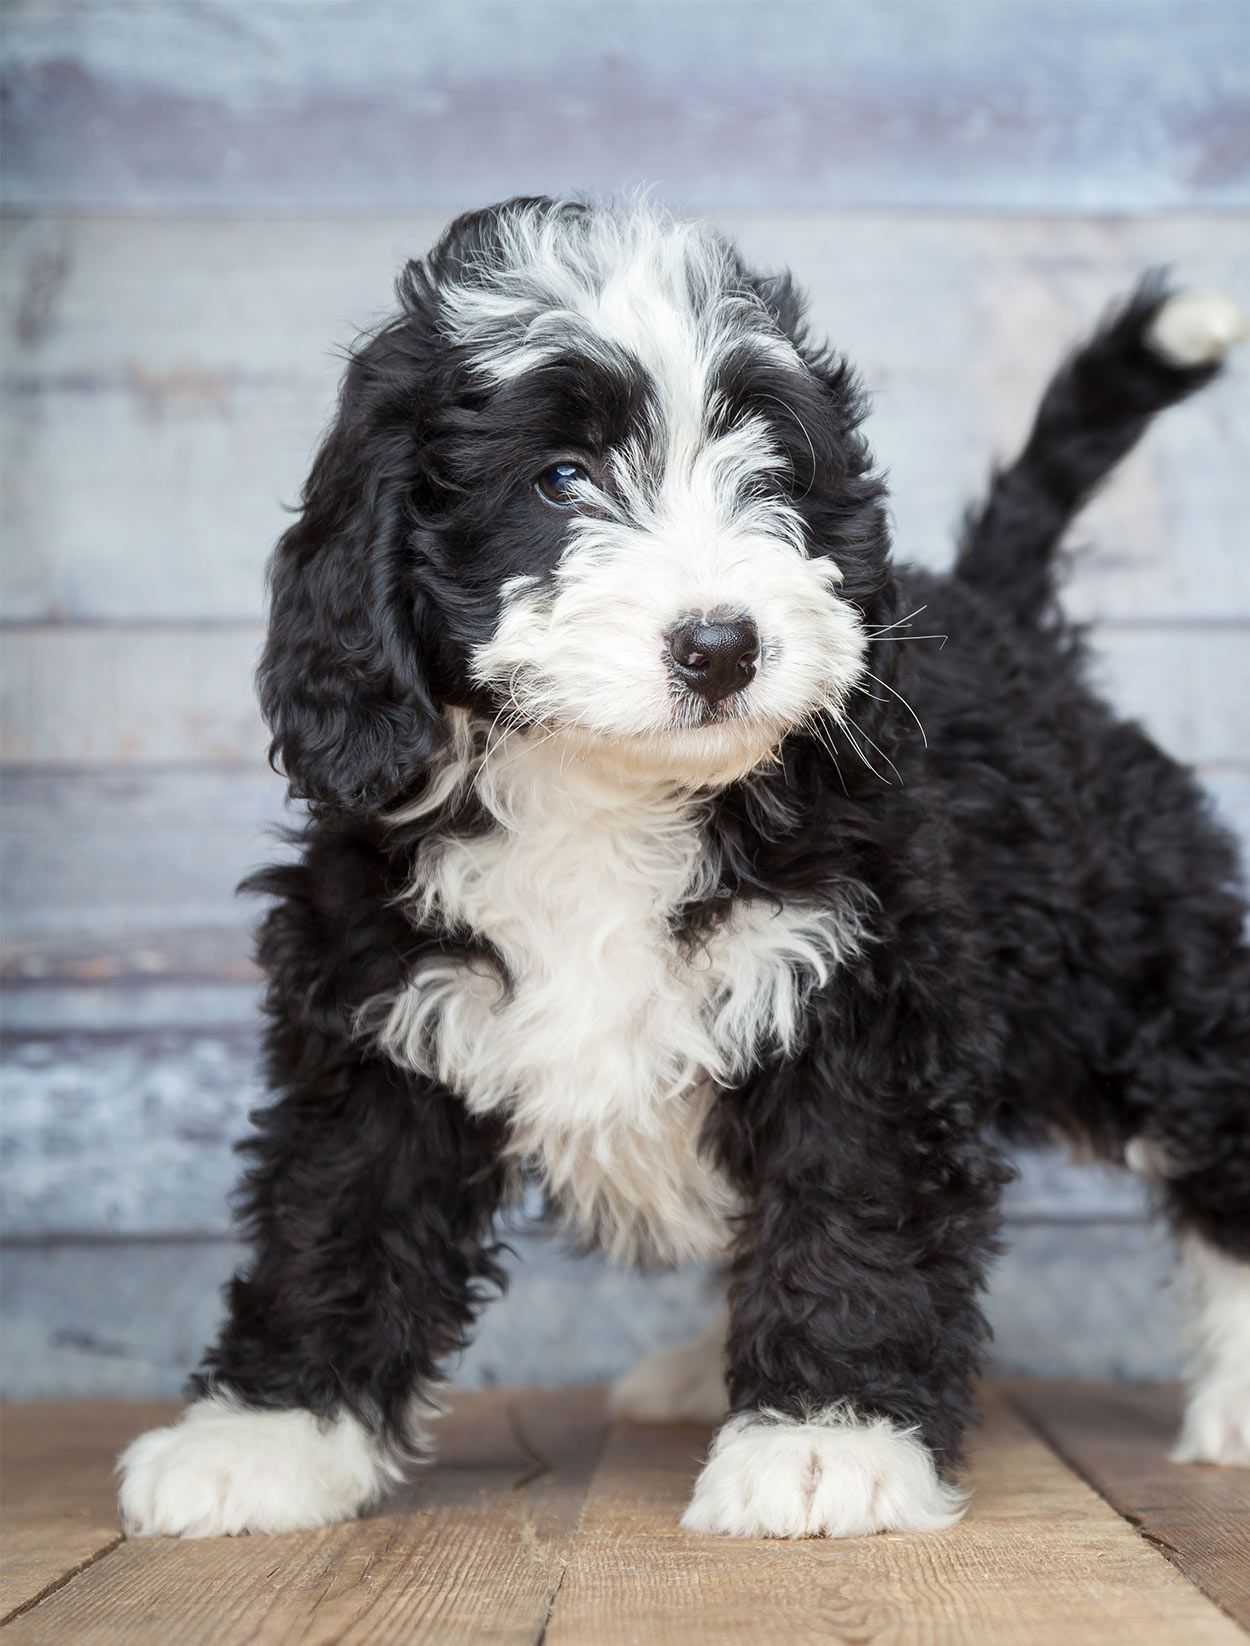 Bernedoodle The Bernese Mountain Dog Poodle Mix In 2020 Doodle Dog Doodle Dog Breeds Poodle Mix